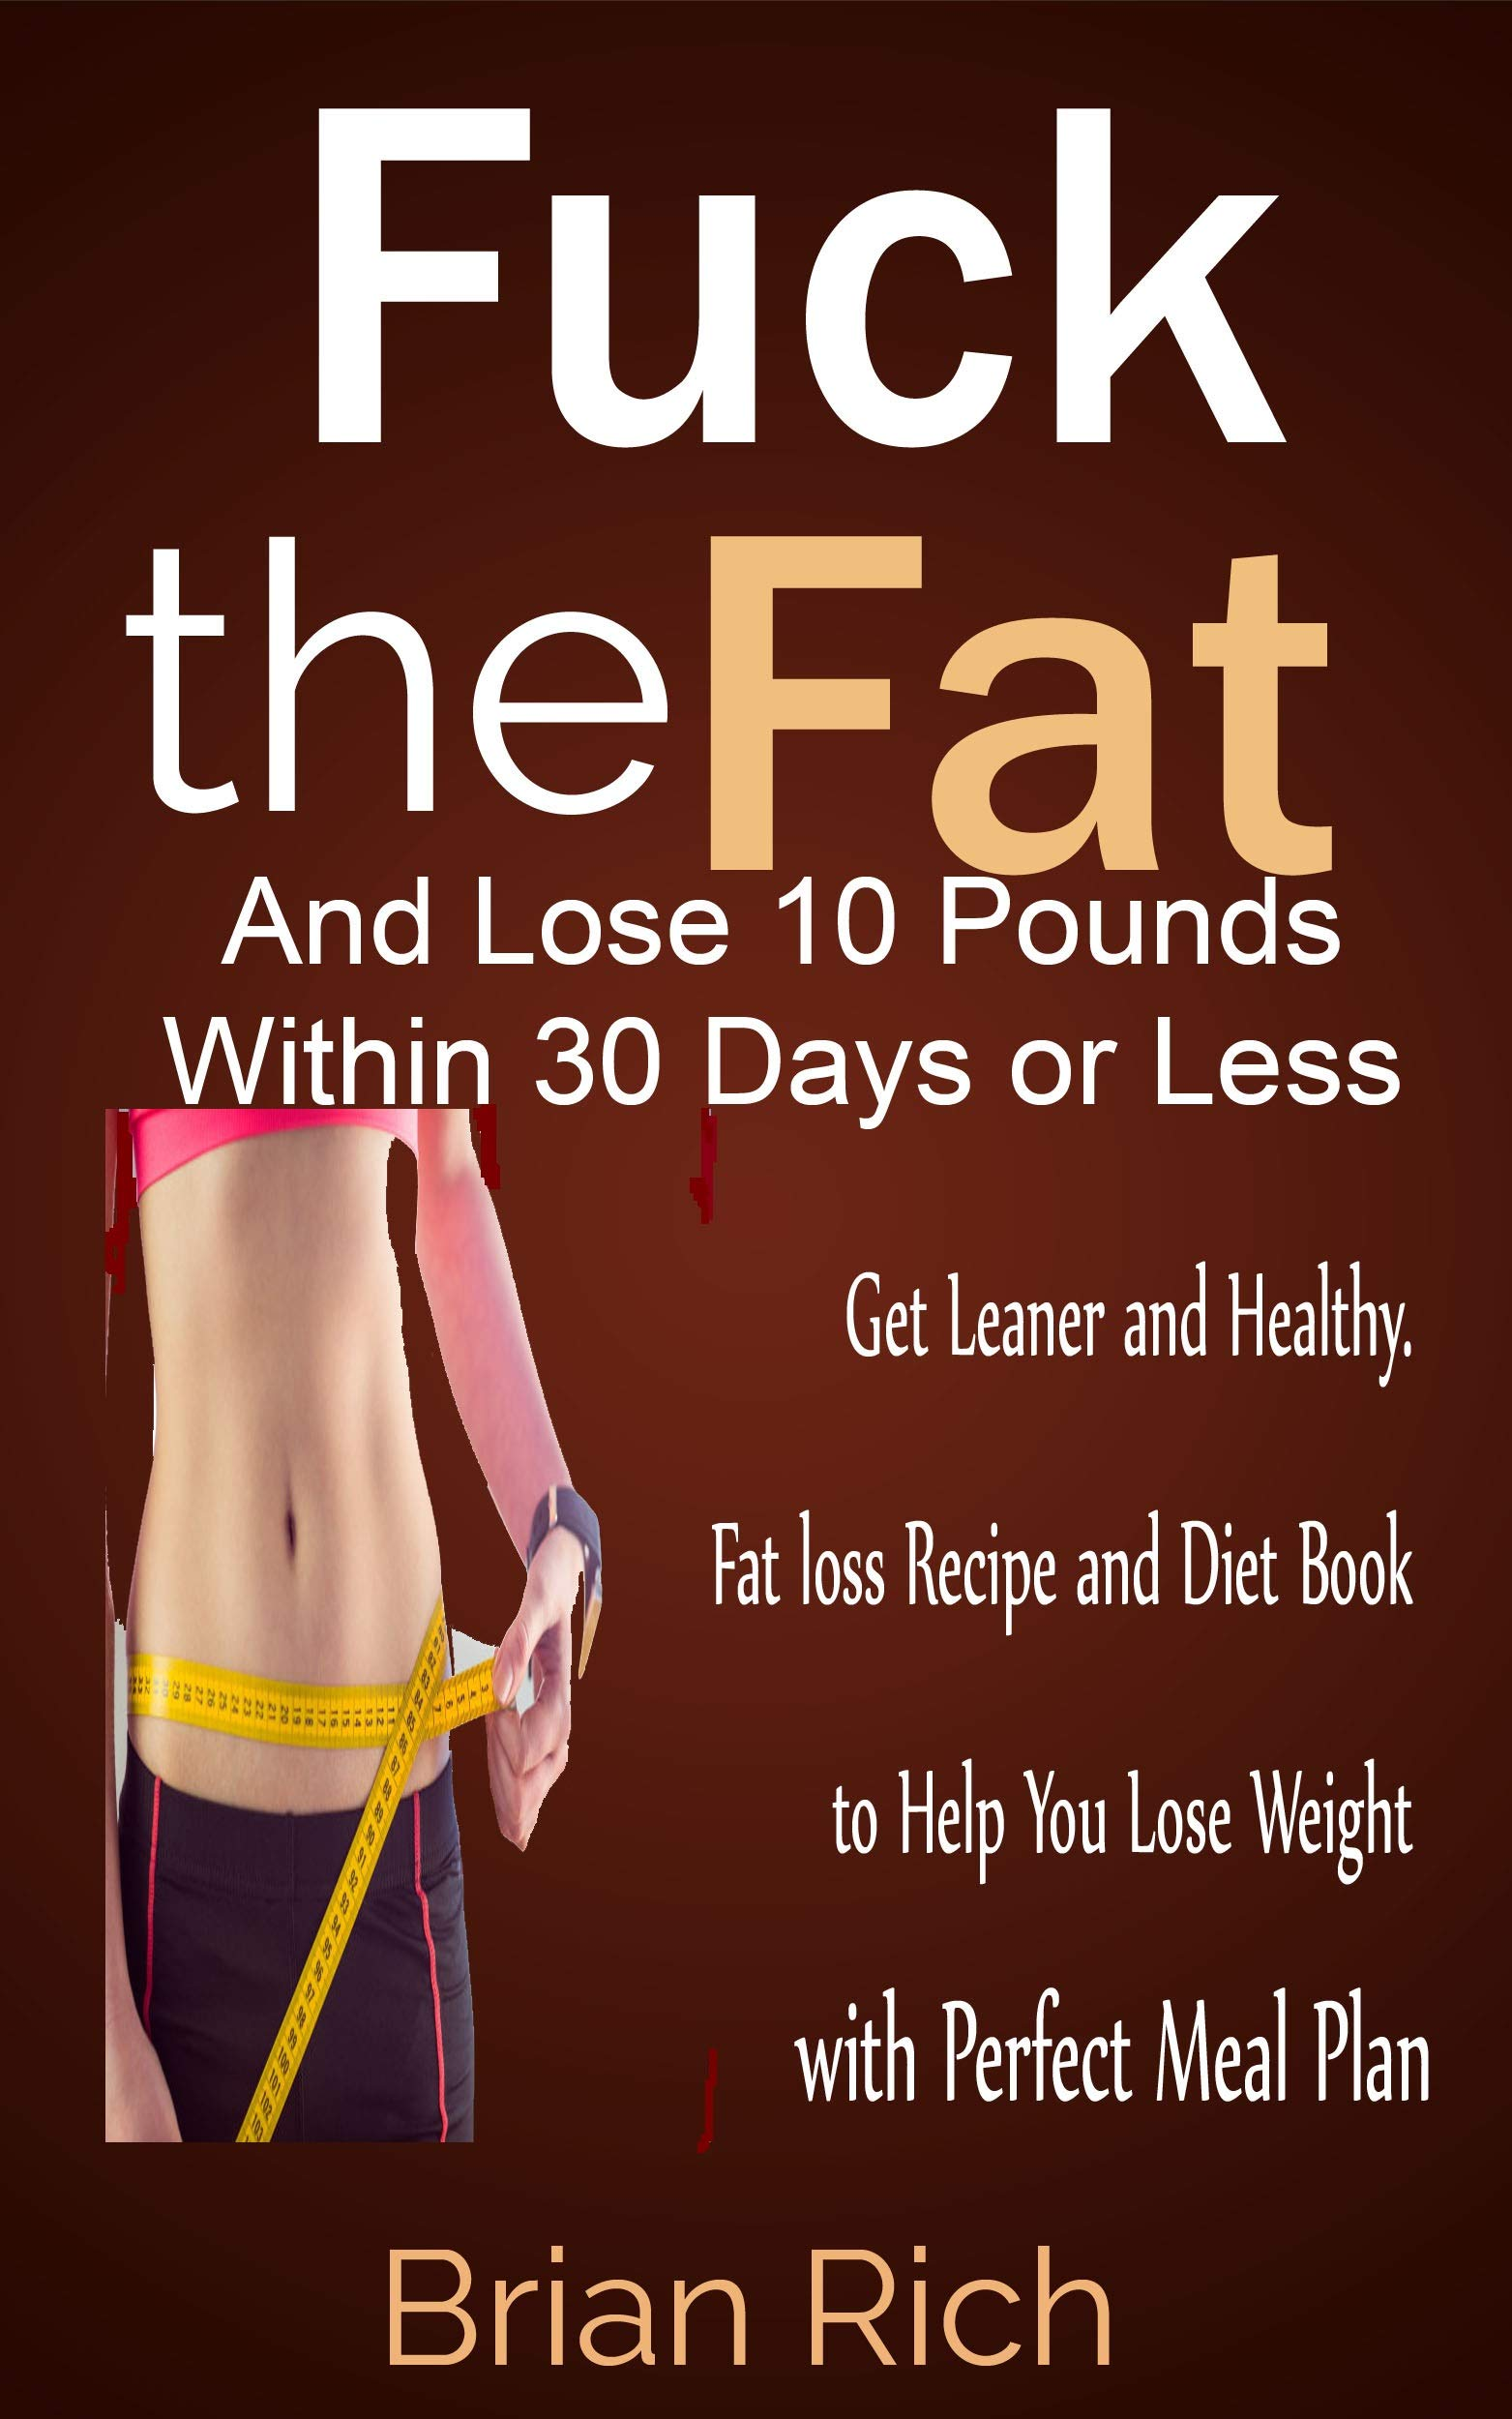 Fuck The Fat And Lose 10 Pounds Within 30 Days Or Less  Get Leaner And Healthy. A Fat Loss Recipe And Diet Book To Help You Lose Weight With Perfect Meal Plan  English Edition